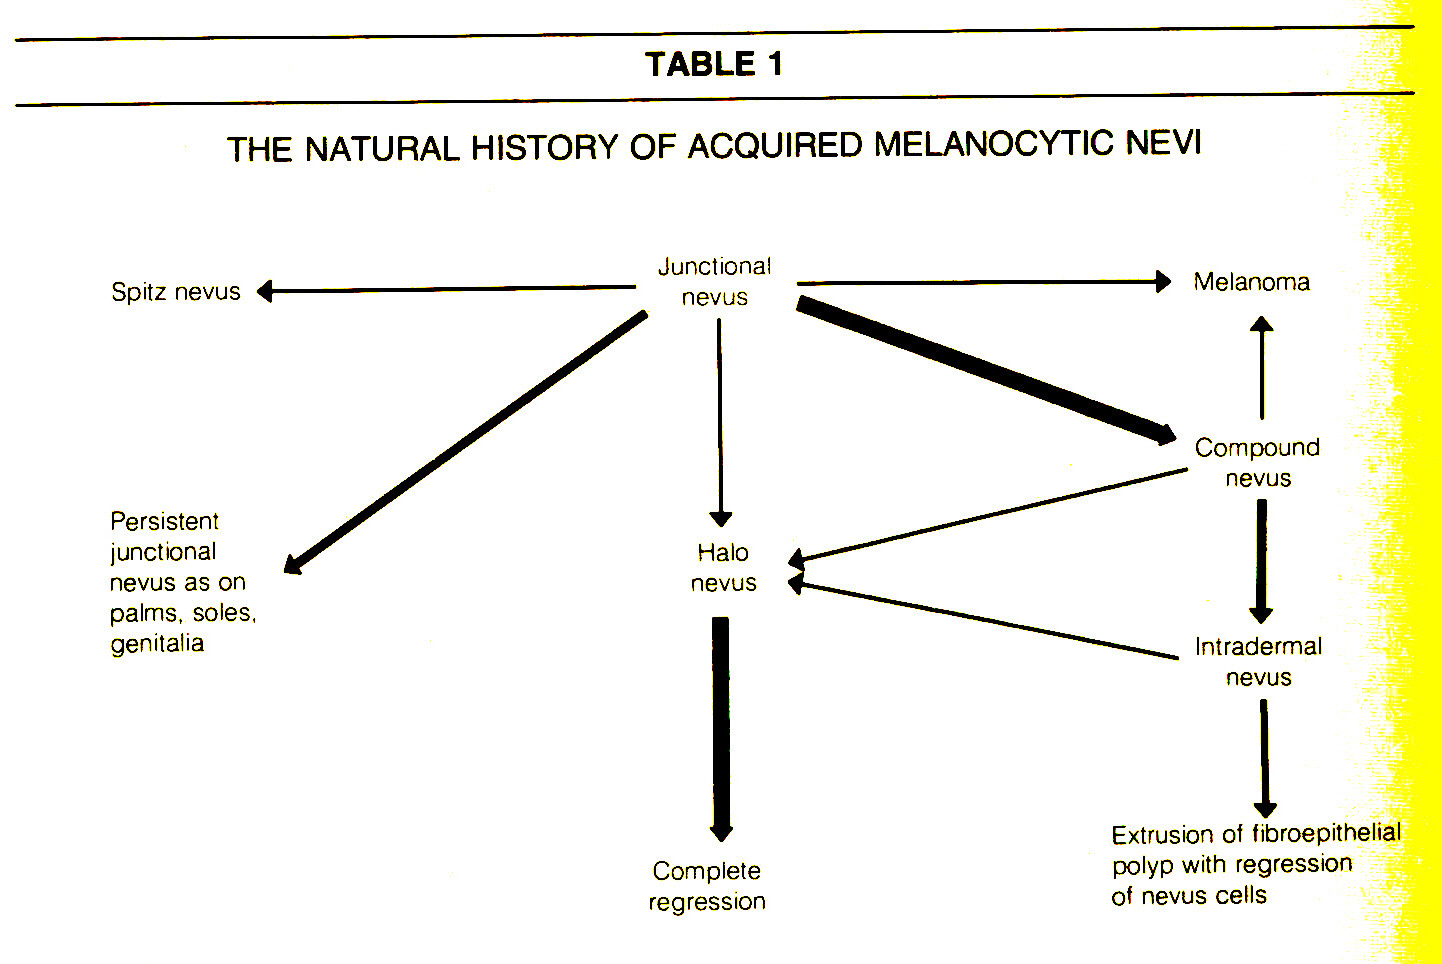 TABLE 1THE NATURAL HISTORY OF ACQUIRED MELANOCYTIC NEVI